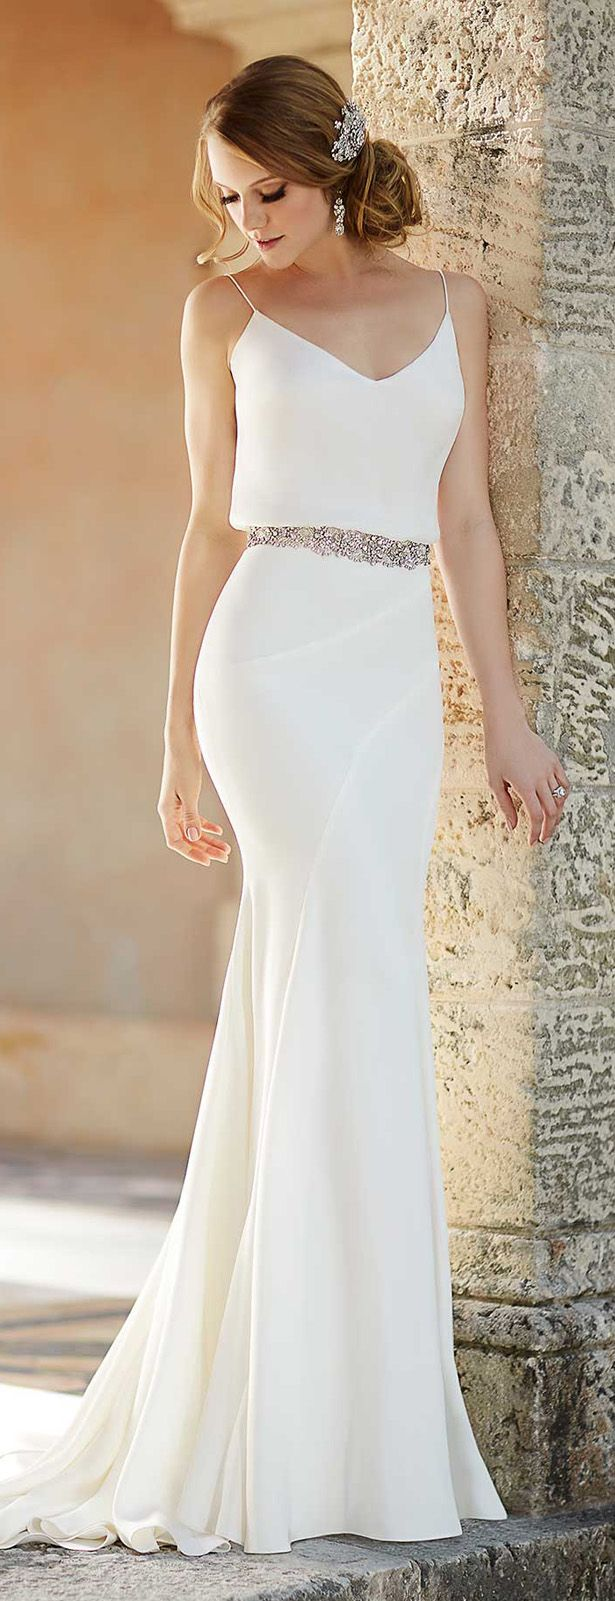 belle wedding dresses wedding dresses Martina Liana Spring Bridal Collection